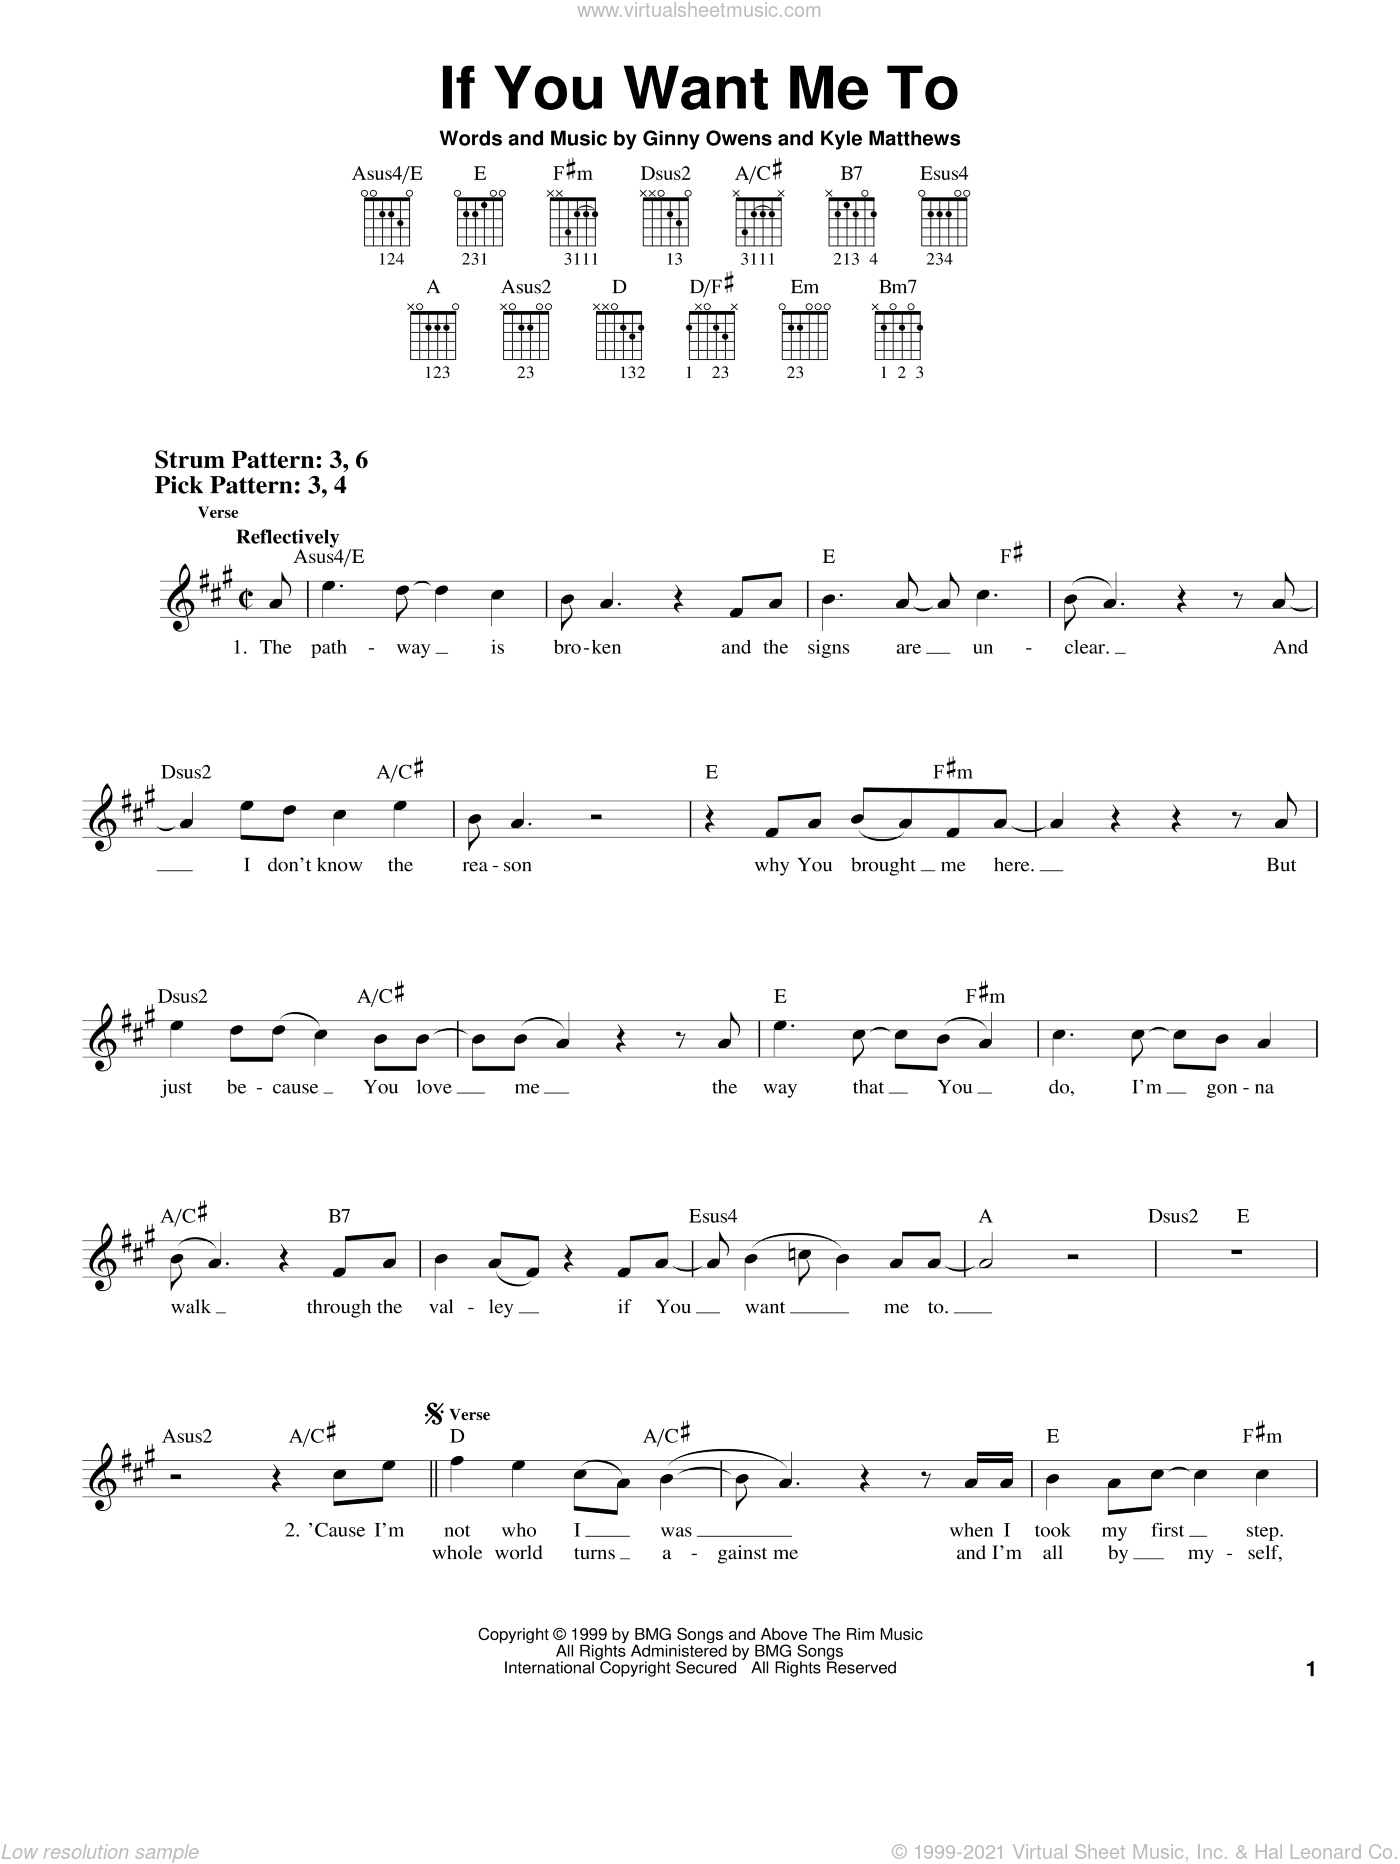 If You Want Me To sheet music for guitar solo (chords) by Kyle Matthews and Ginny Owens. Score Image Preview.